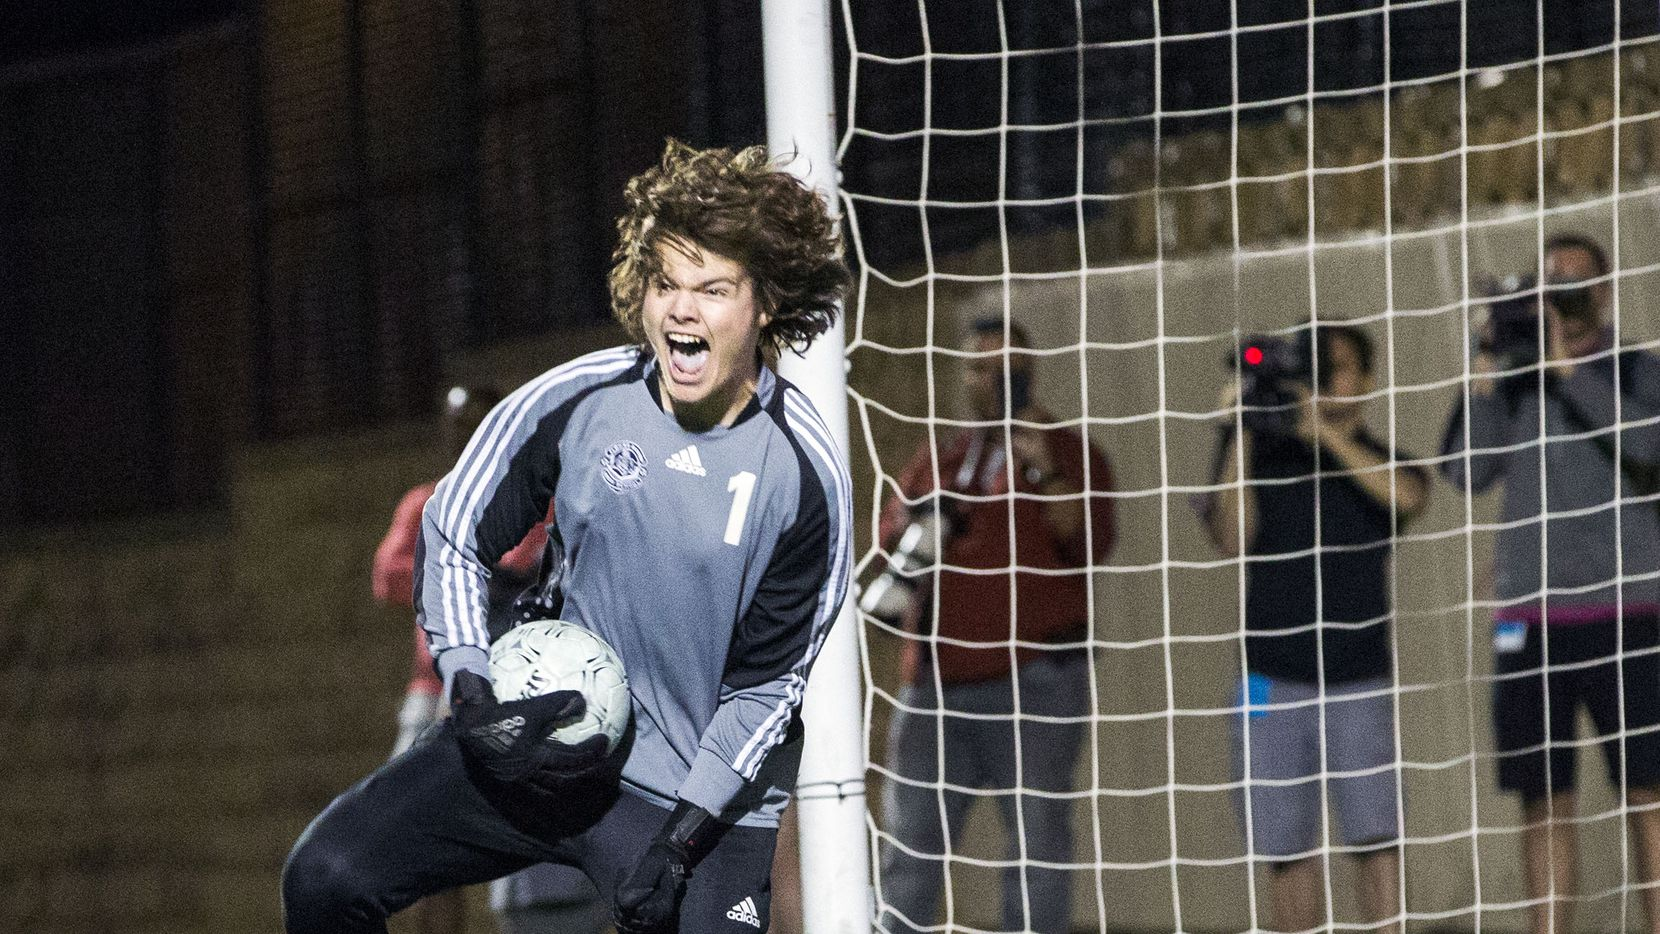 Lewisville Flower Mound goalkeeper Landon Leach (1) celebrates after stopping the ball in the shootout during theUIL conference 6A boys state finalsoccergame between Lewisville Flower Mound and San Antonio LEE at Birkelbach Field in Georgetown, Texas on Saturday, April 20, 2019. Lewisville Flower Mound beat San Antonio LEE 1 to 0.